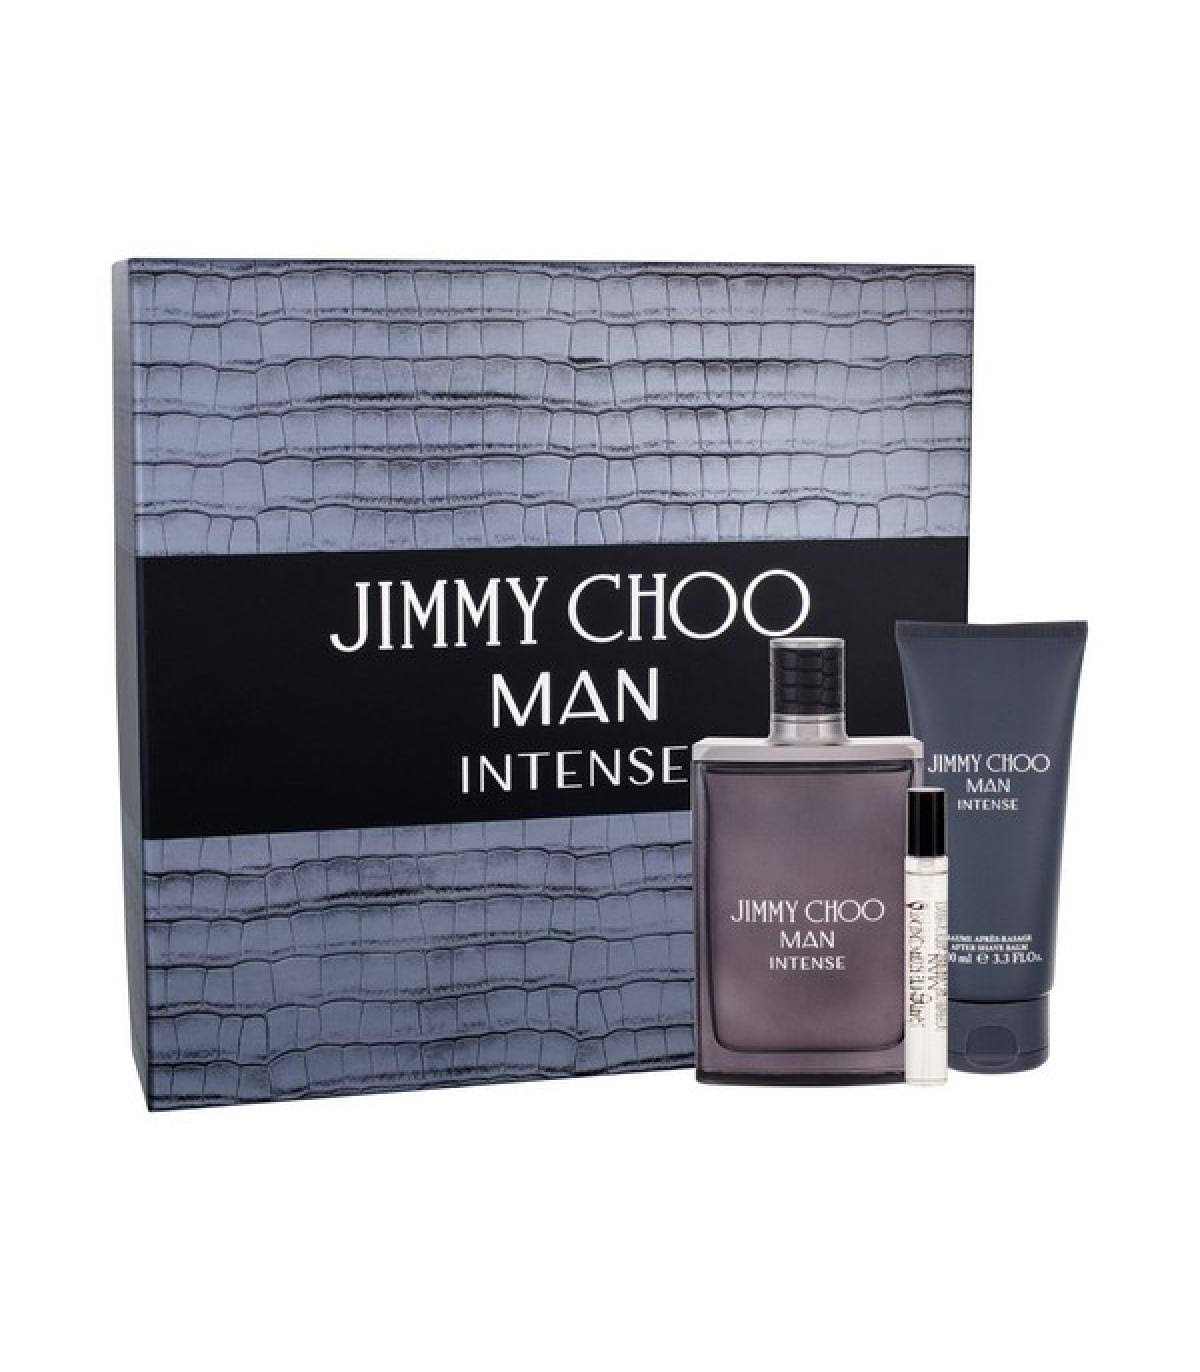 Jimmy Choo Man Intense Eau de Toilette 3 Pcs Gift Set